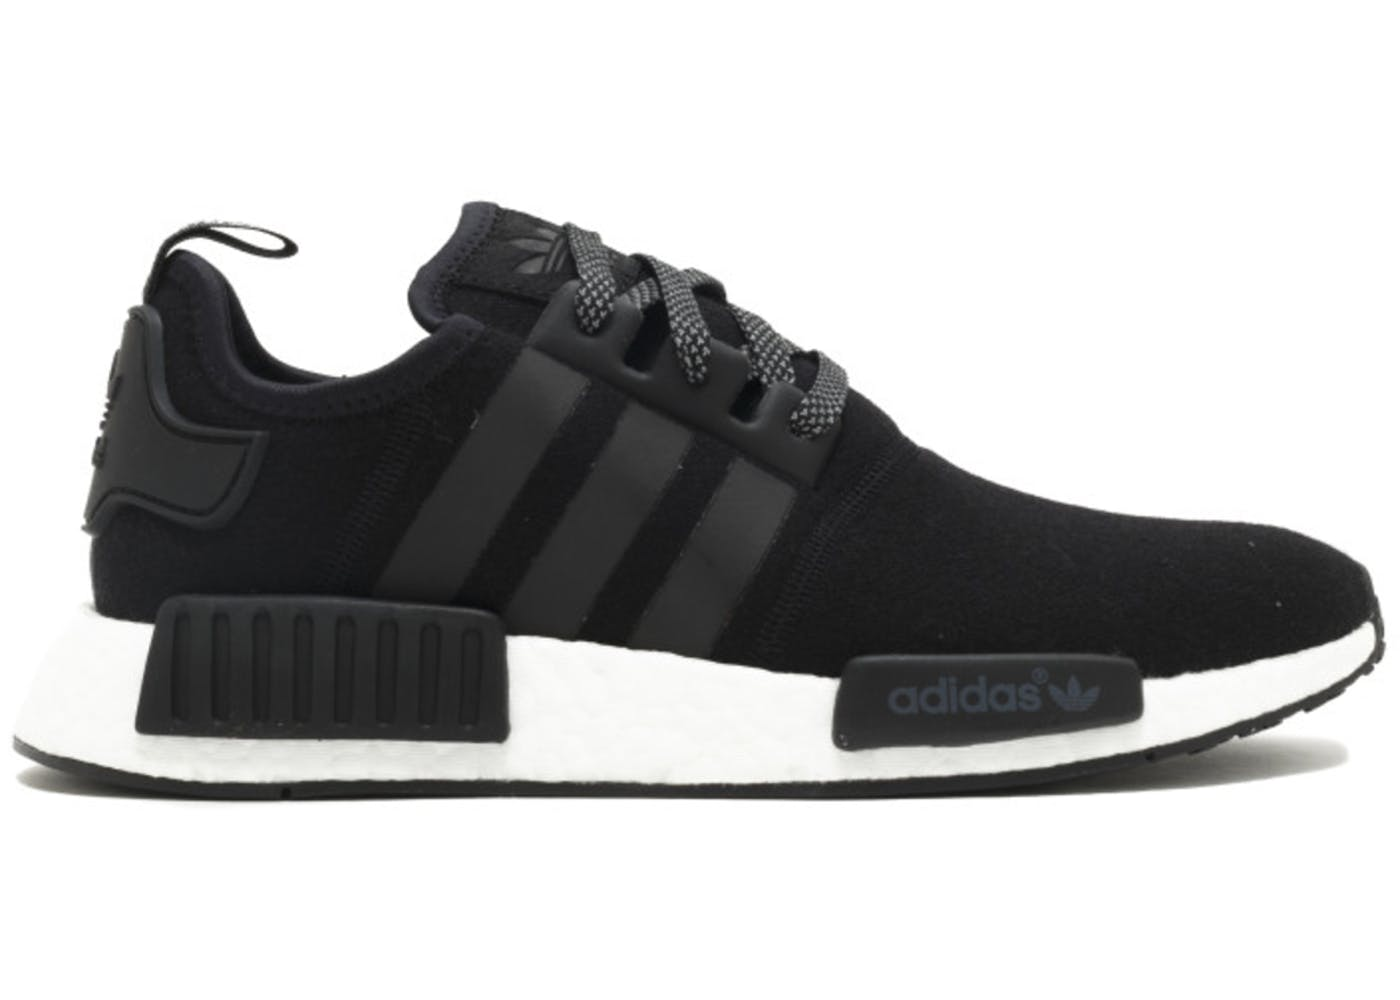 adidas nmd r1 black wool. Black Bedroom Furniture Sets. Home Design Ideas